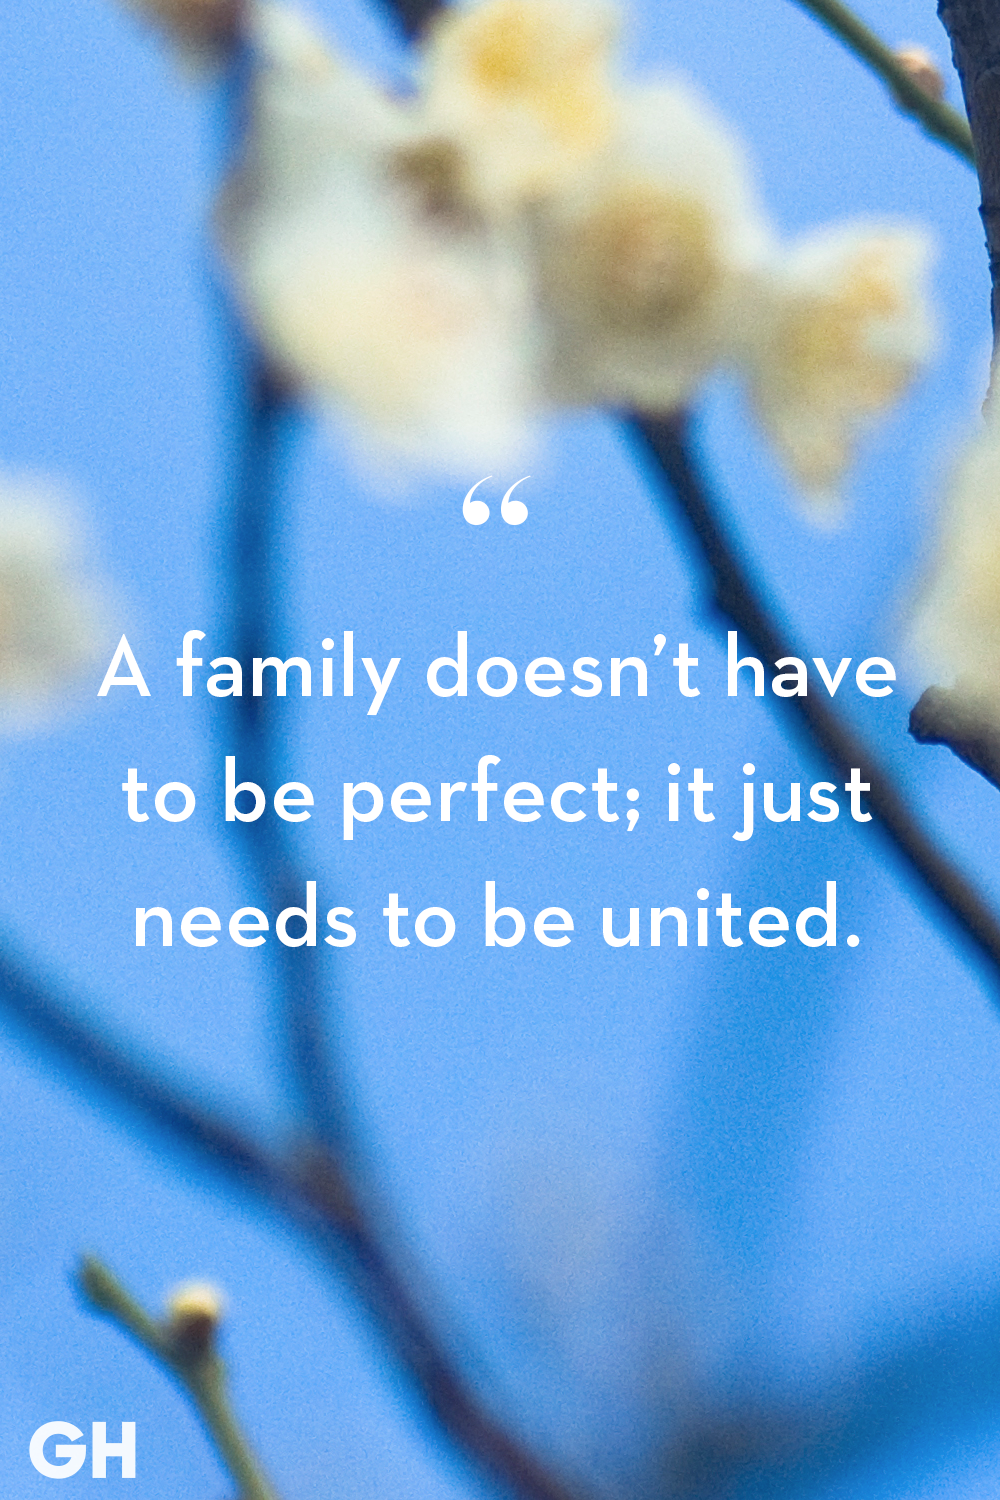 28 Family Quotes Short Quotes About The Importance Of Family